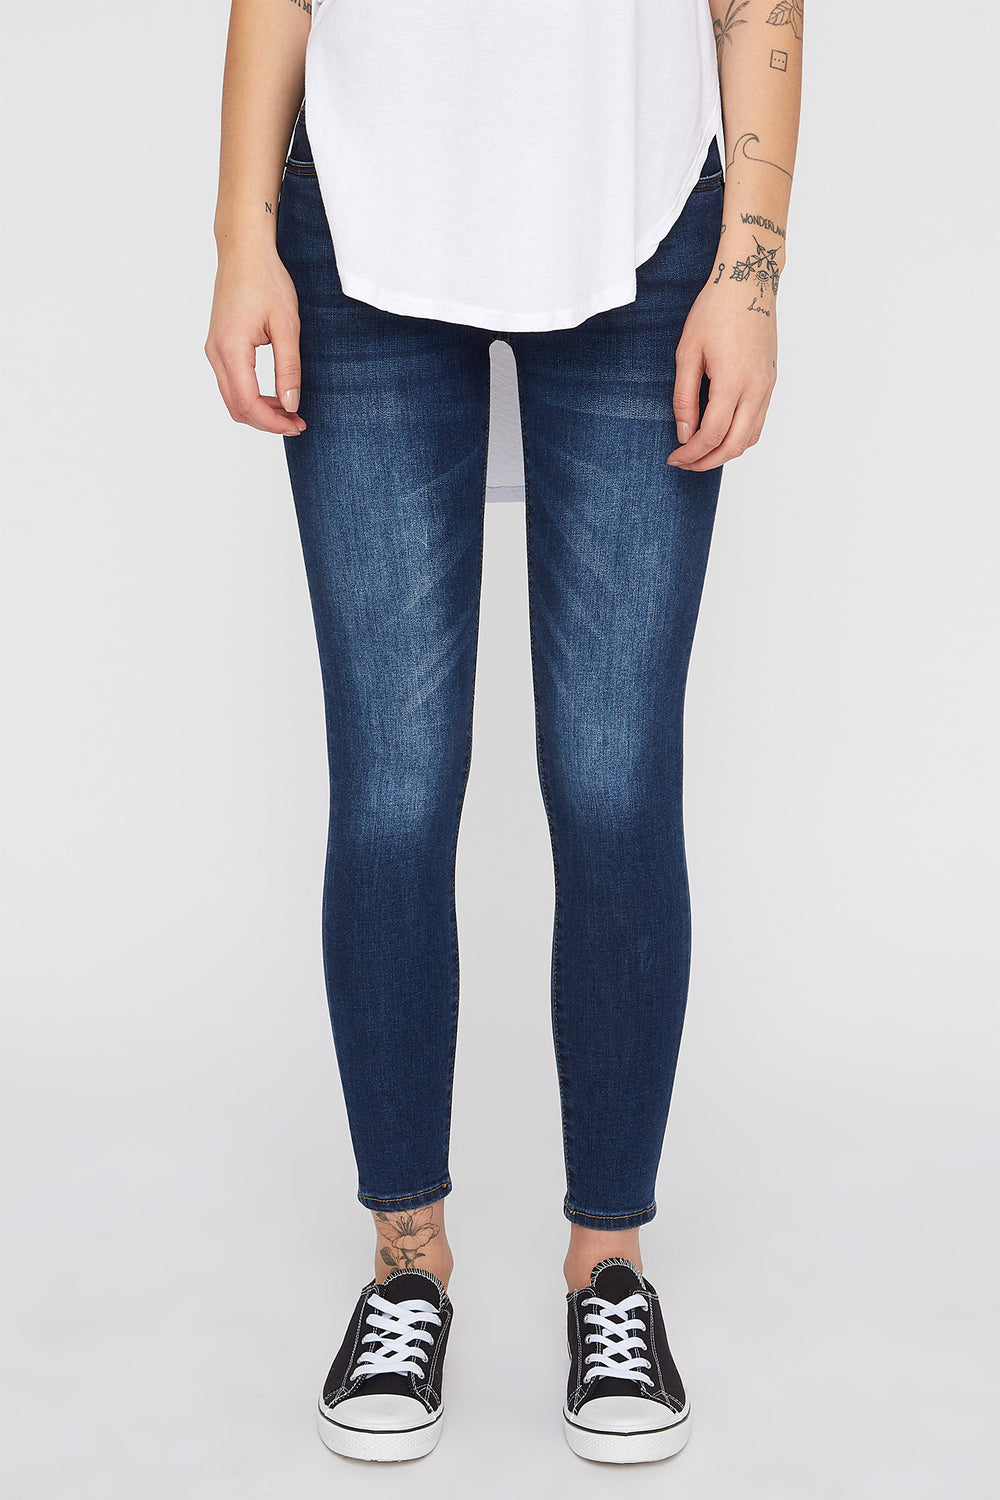 Zoo York Women's high rise 3 tier dark wash curvy jeans Denim Blue